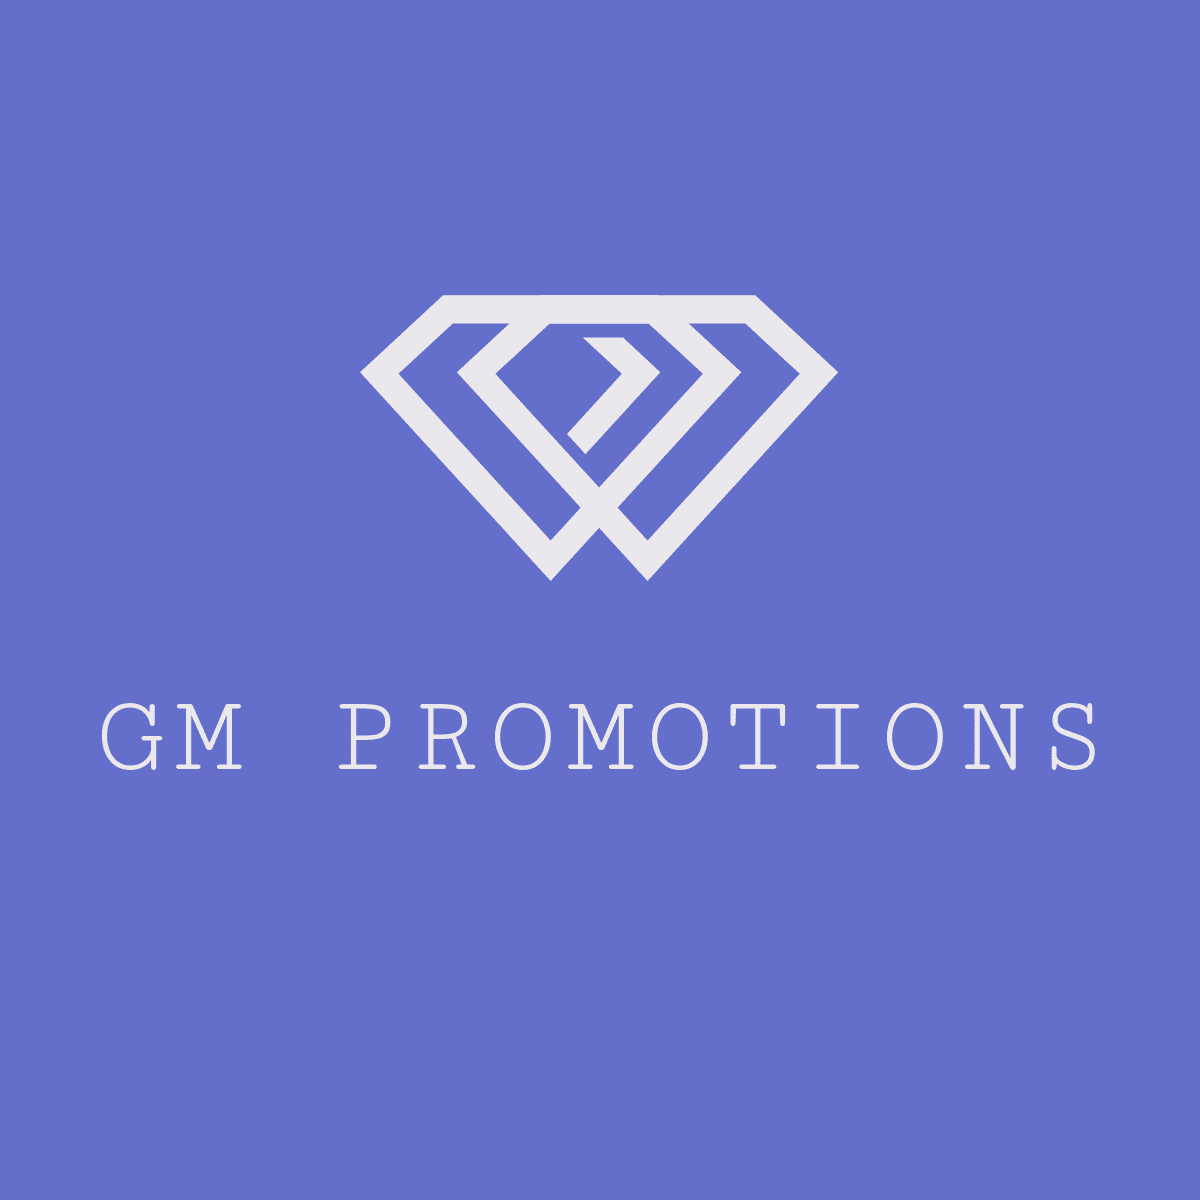 GM Promotions primary image